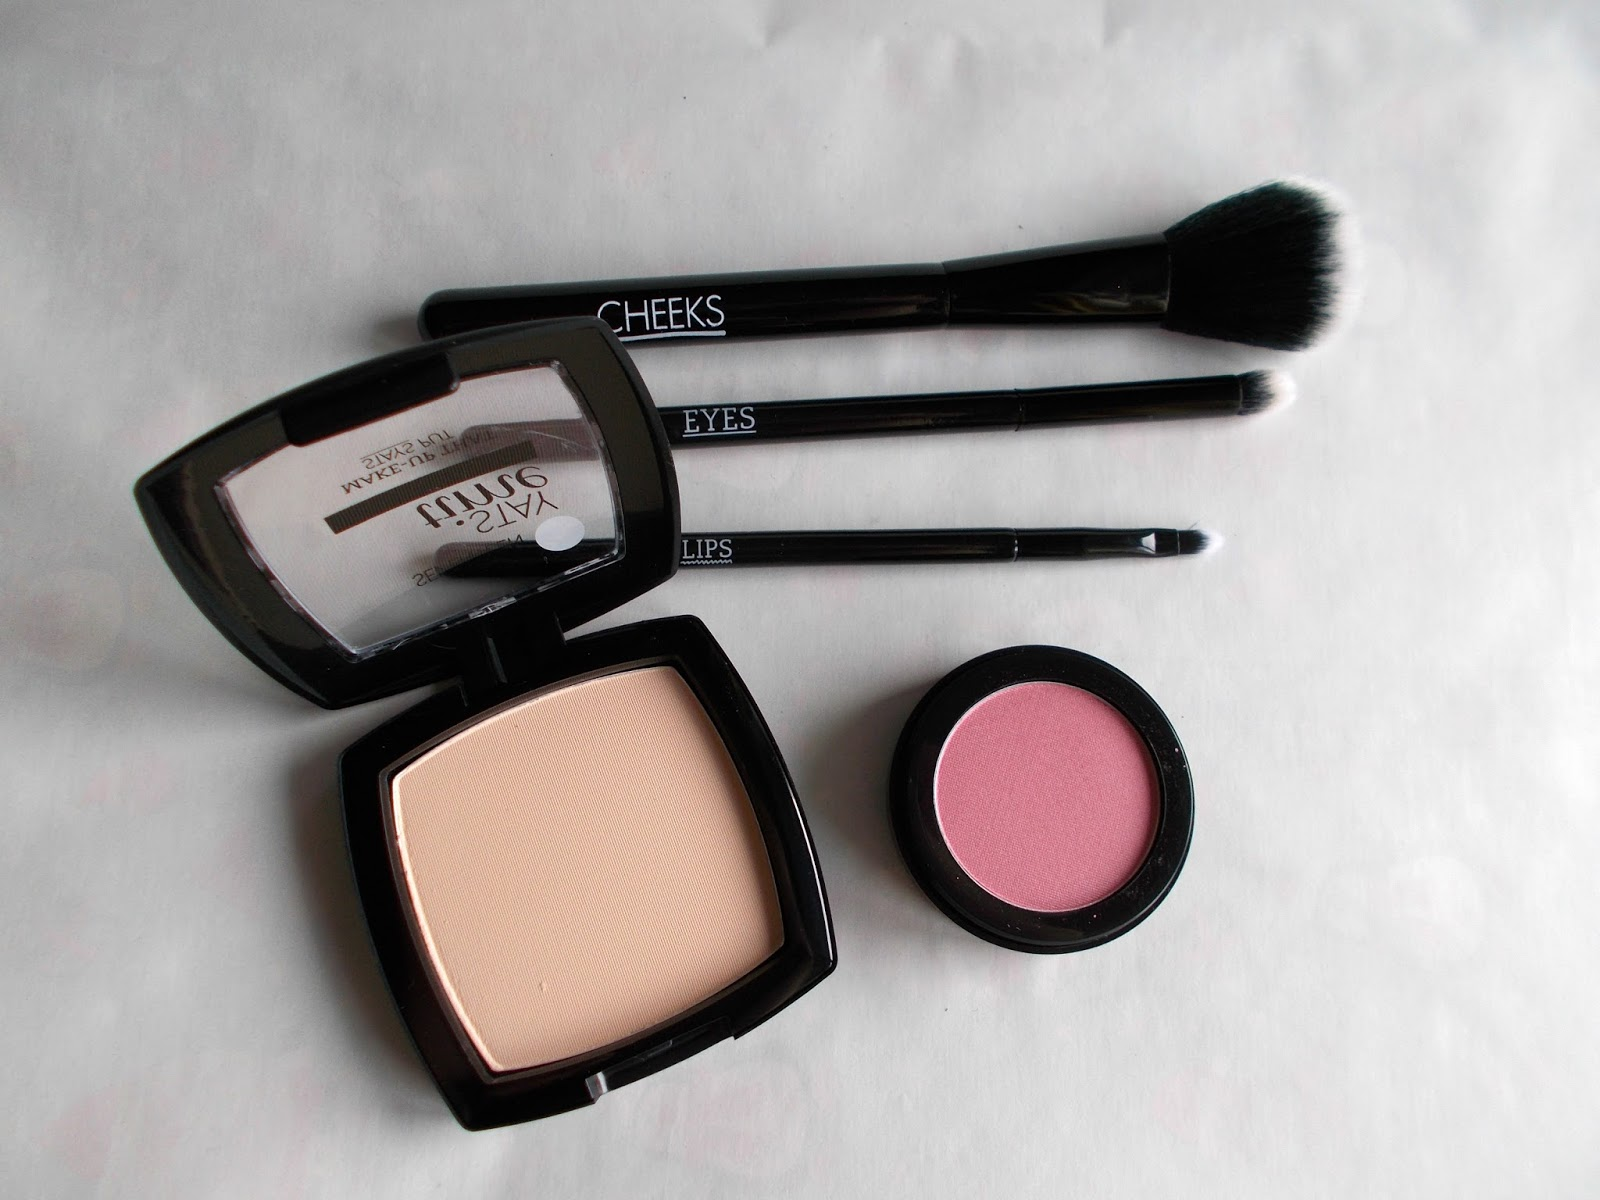 SEVENTEEN gift with purchase blush powder makeup brushes review